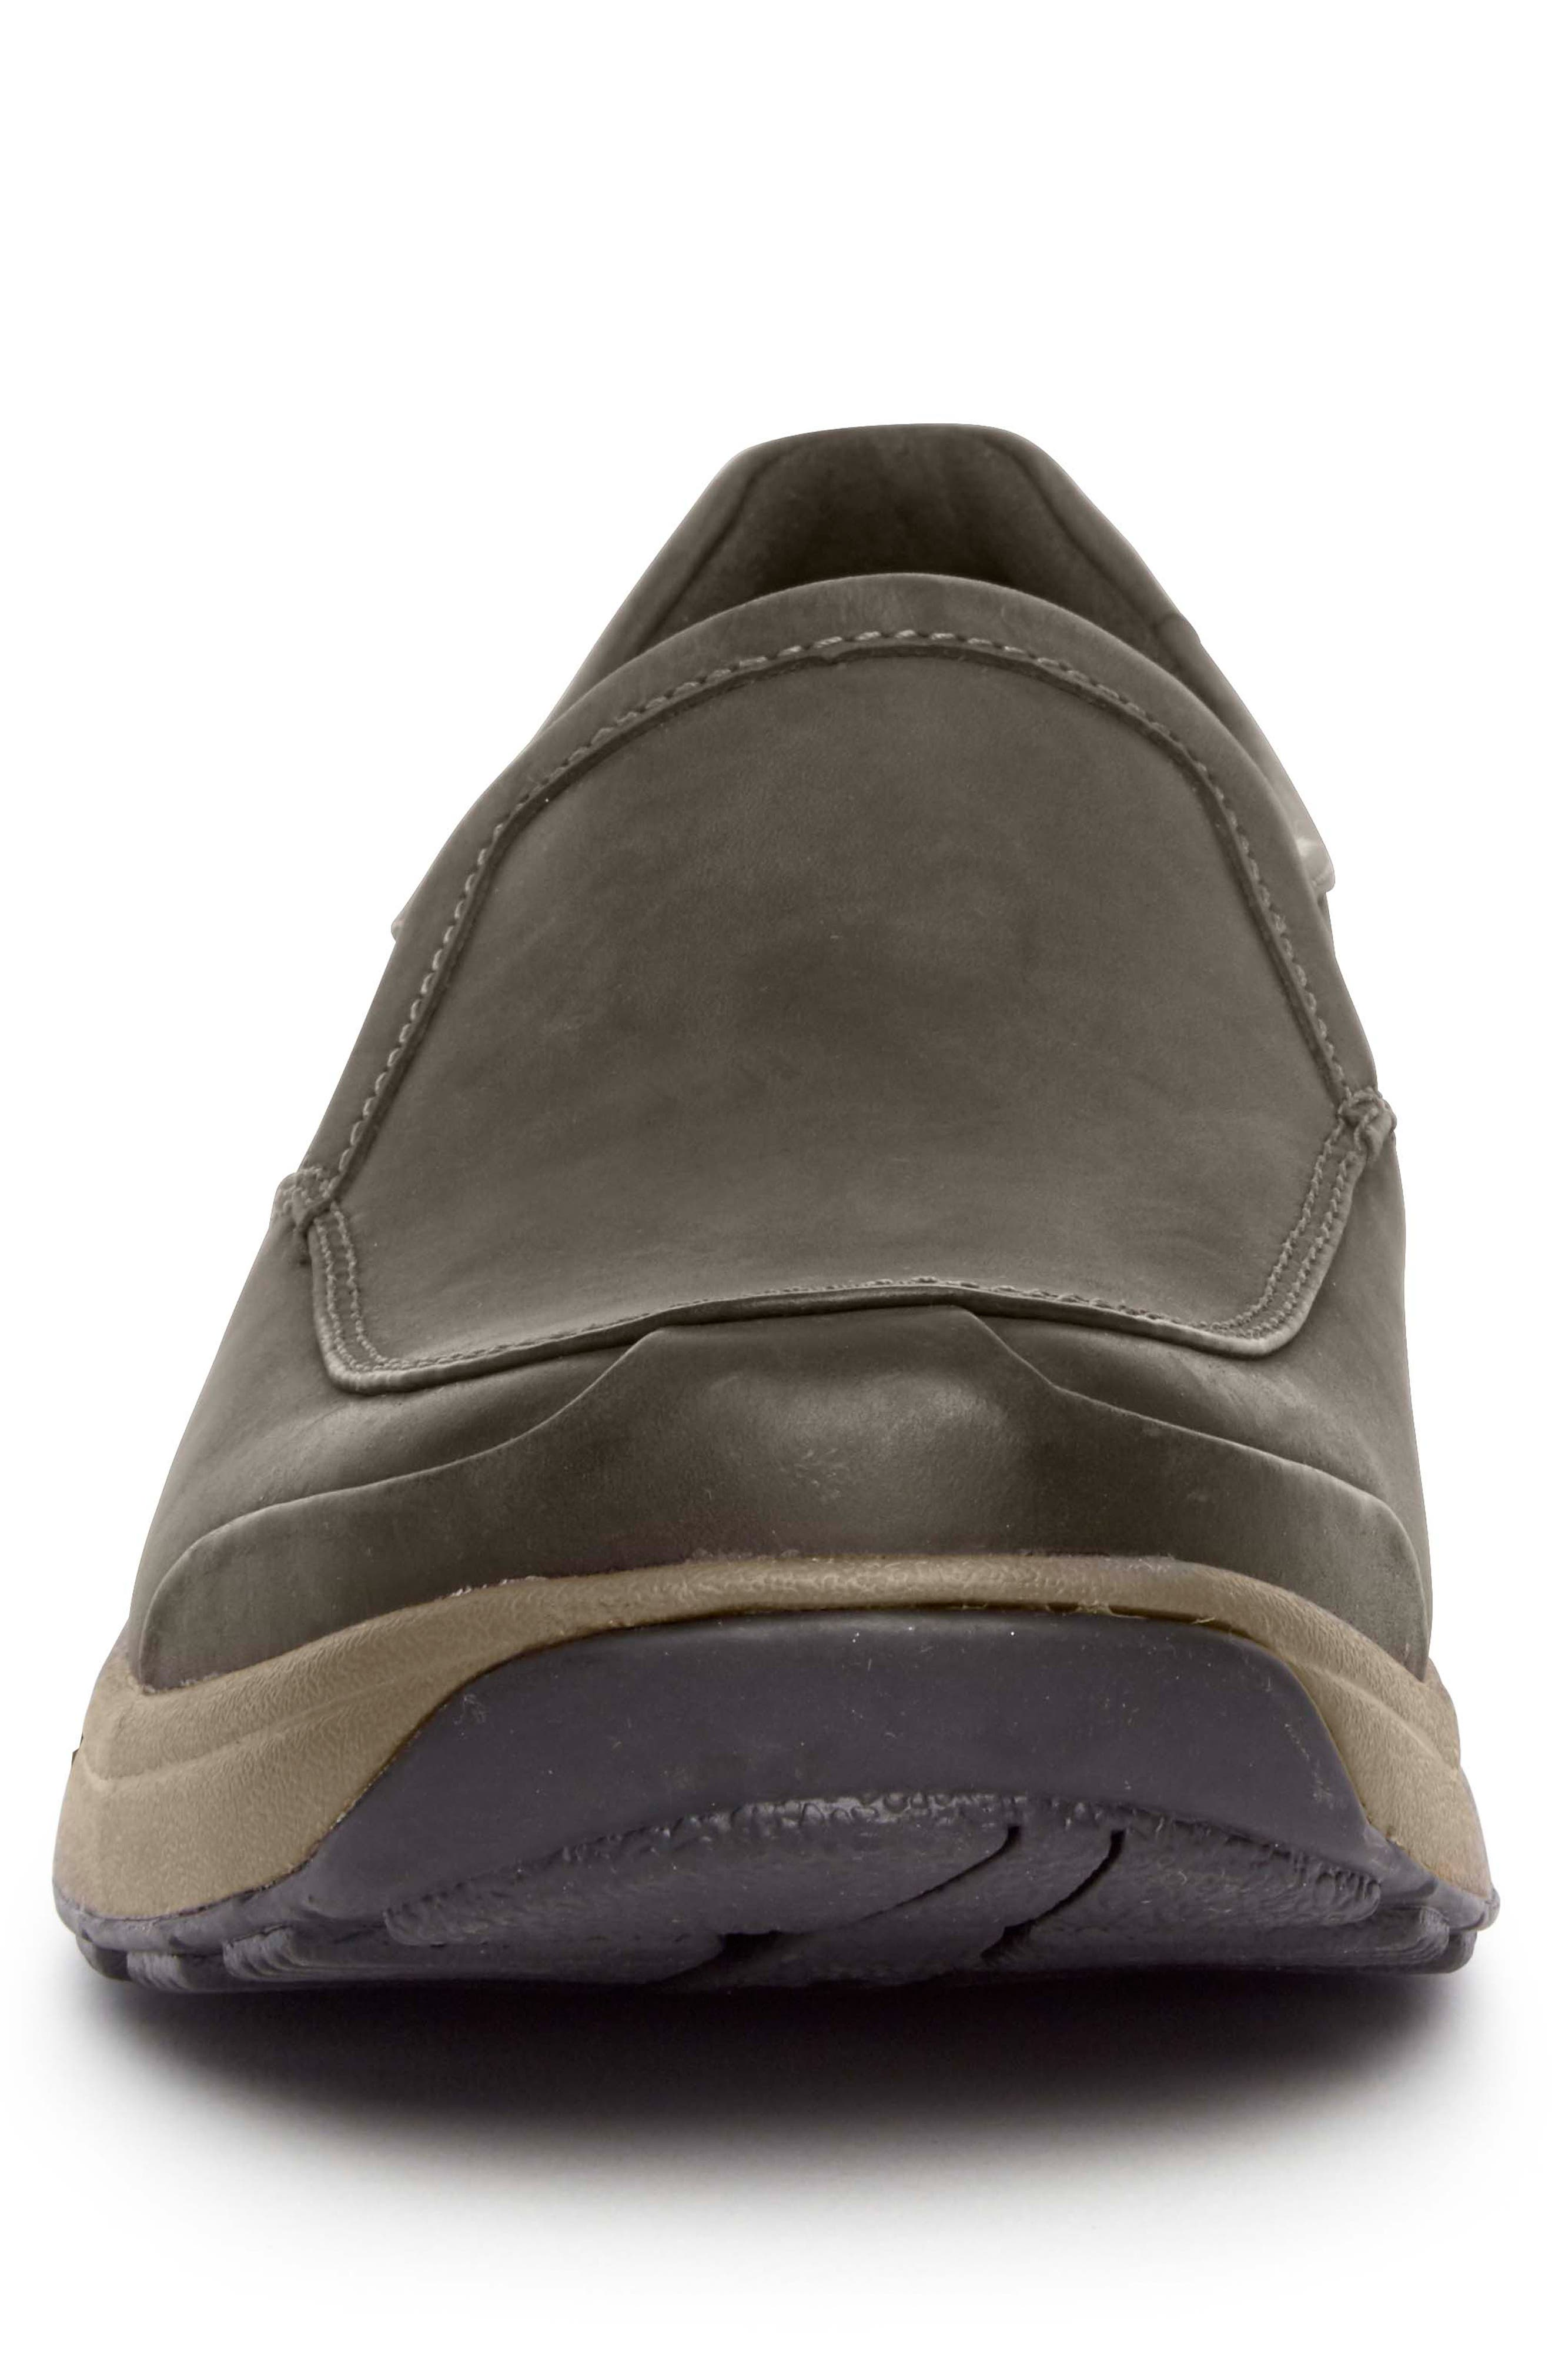 Battery Park Waterproof Slip-On,                             Alternate thumbnail 4, color,                             BROWN LEATHER